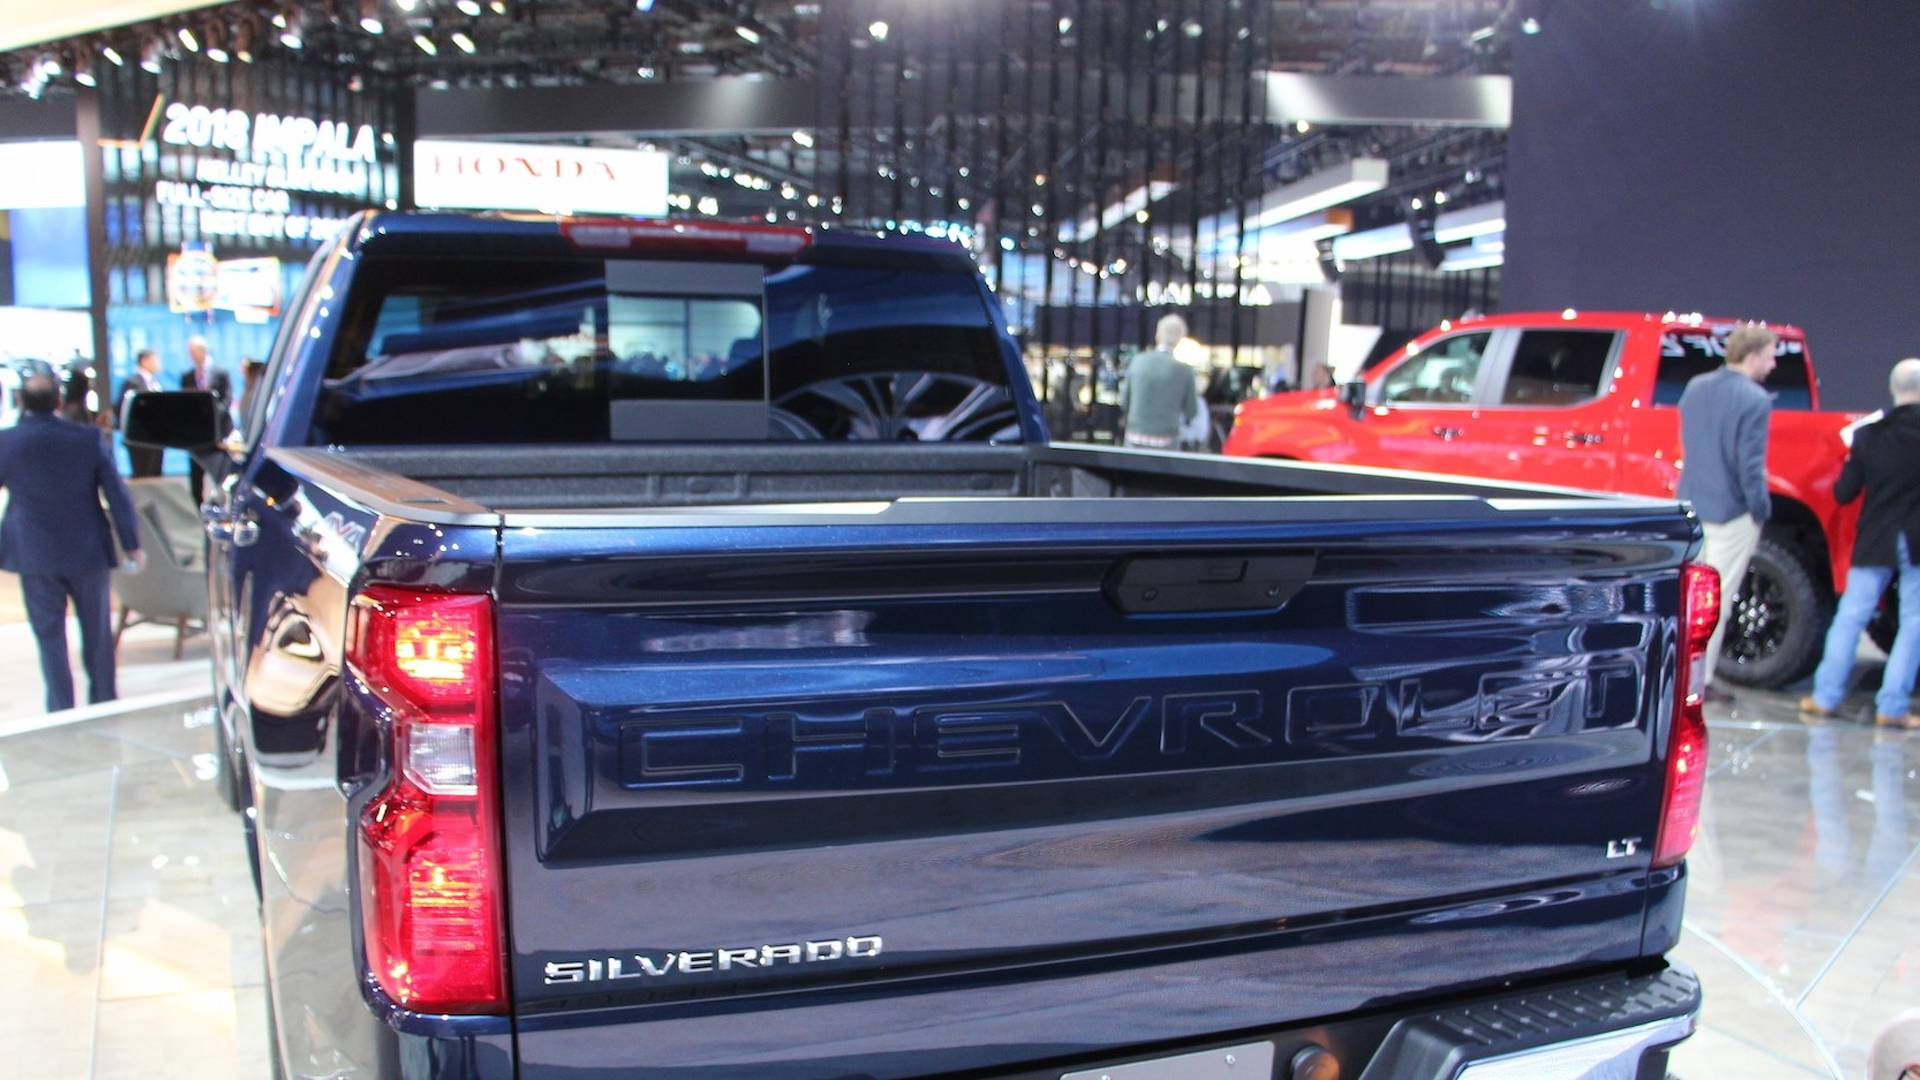 Surprise 2019 Chevy Silverado Available With 310 Hp Turbo Four Big Blue Jacked Up Truck